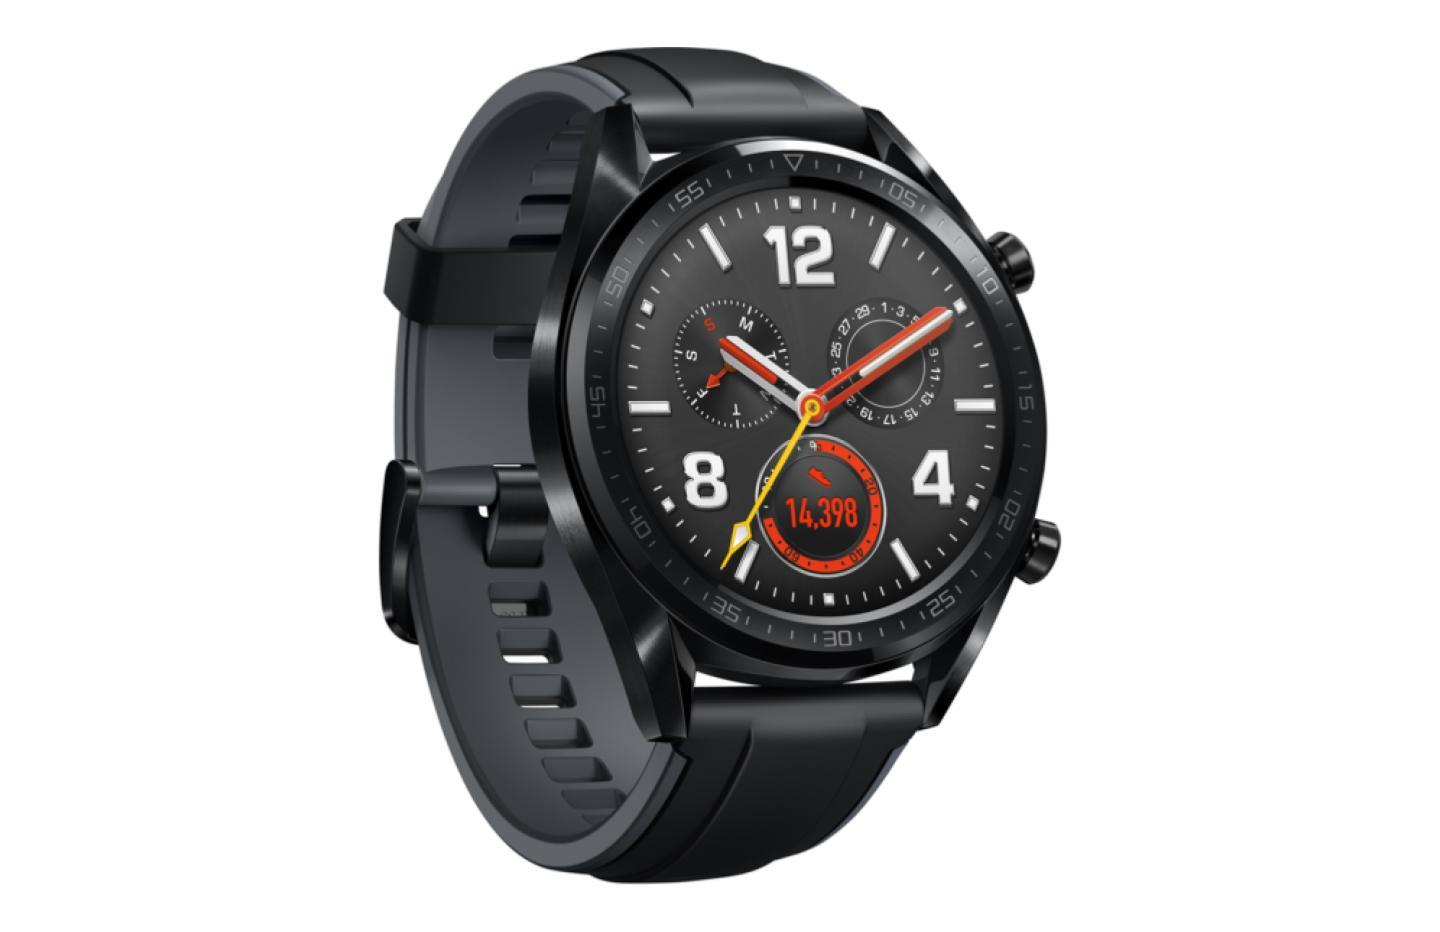 Huawei Watch GT : plus de 50 % de réduction pour la montre connectée